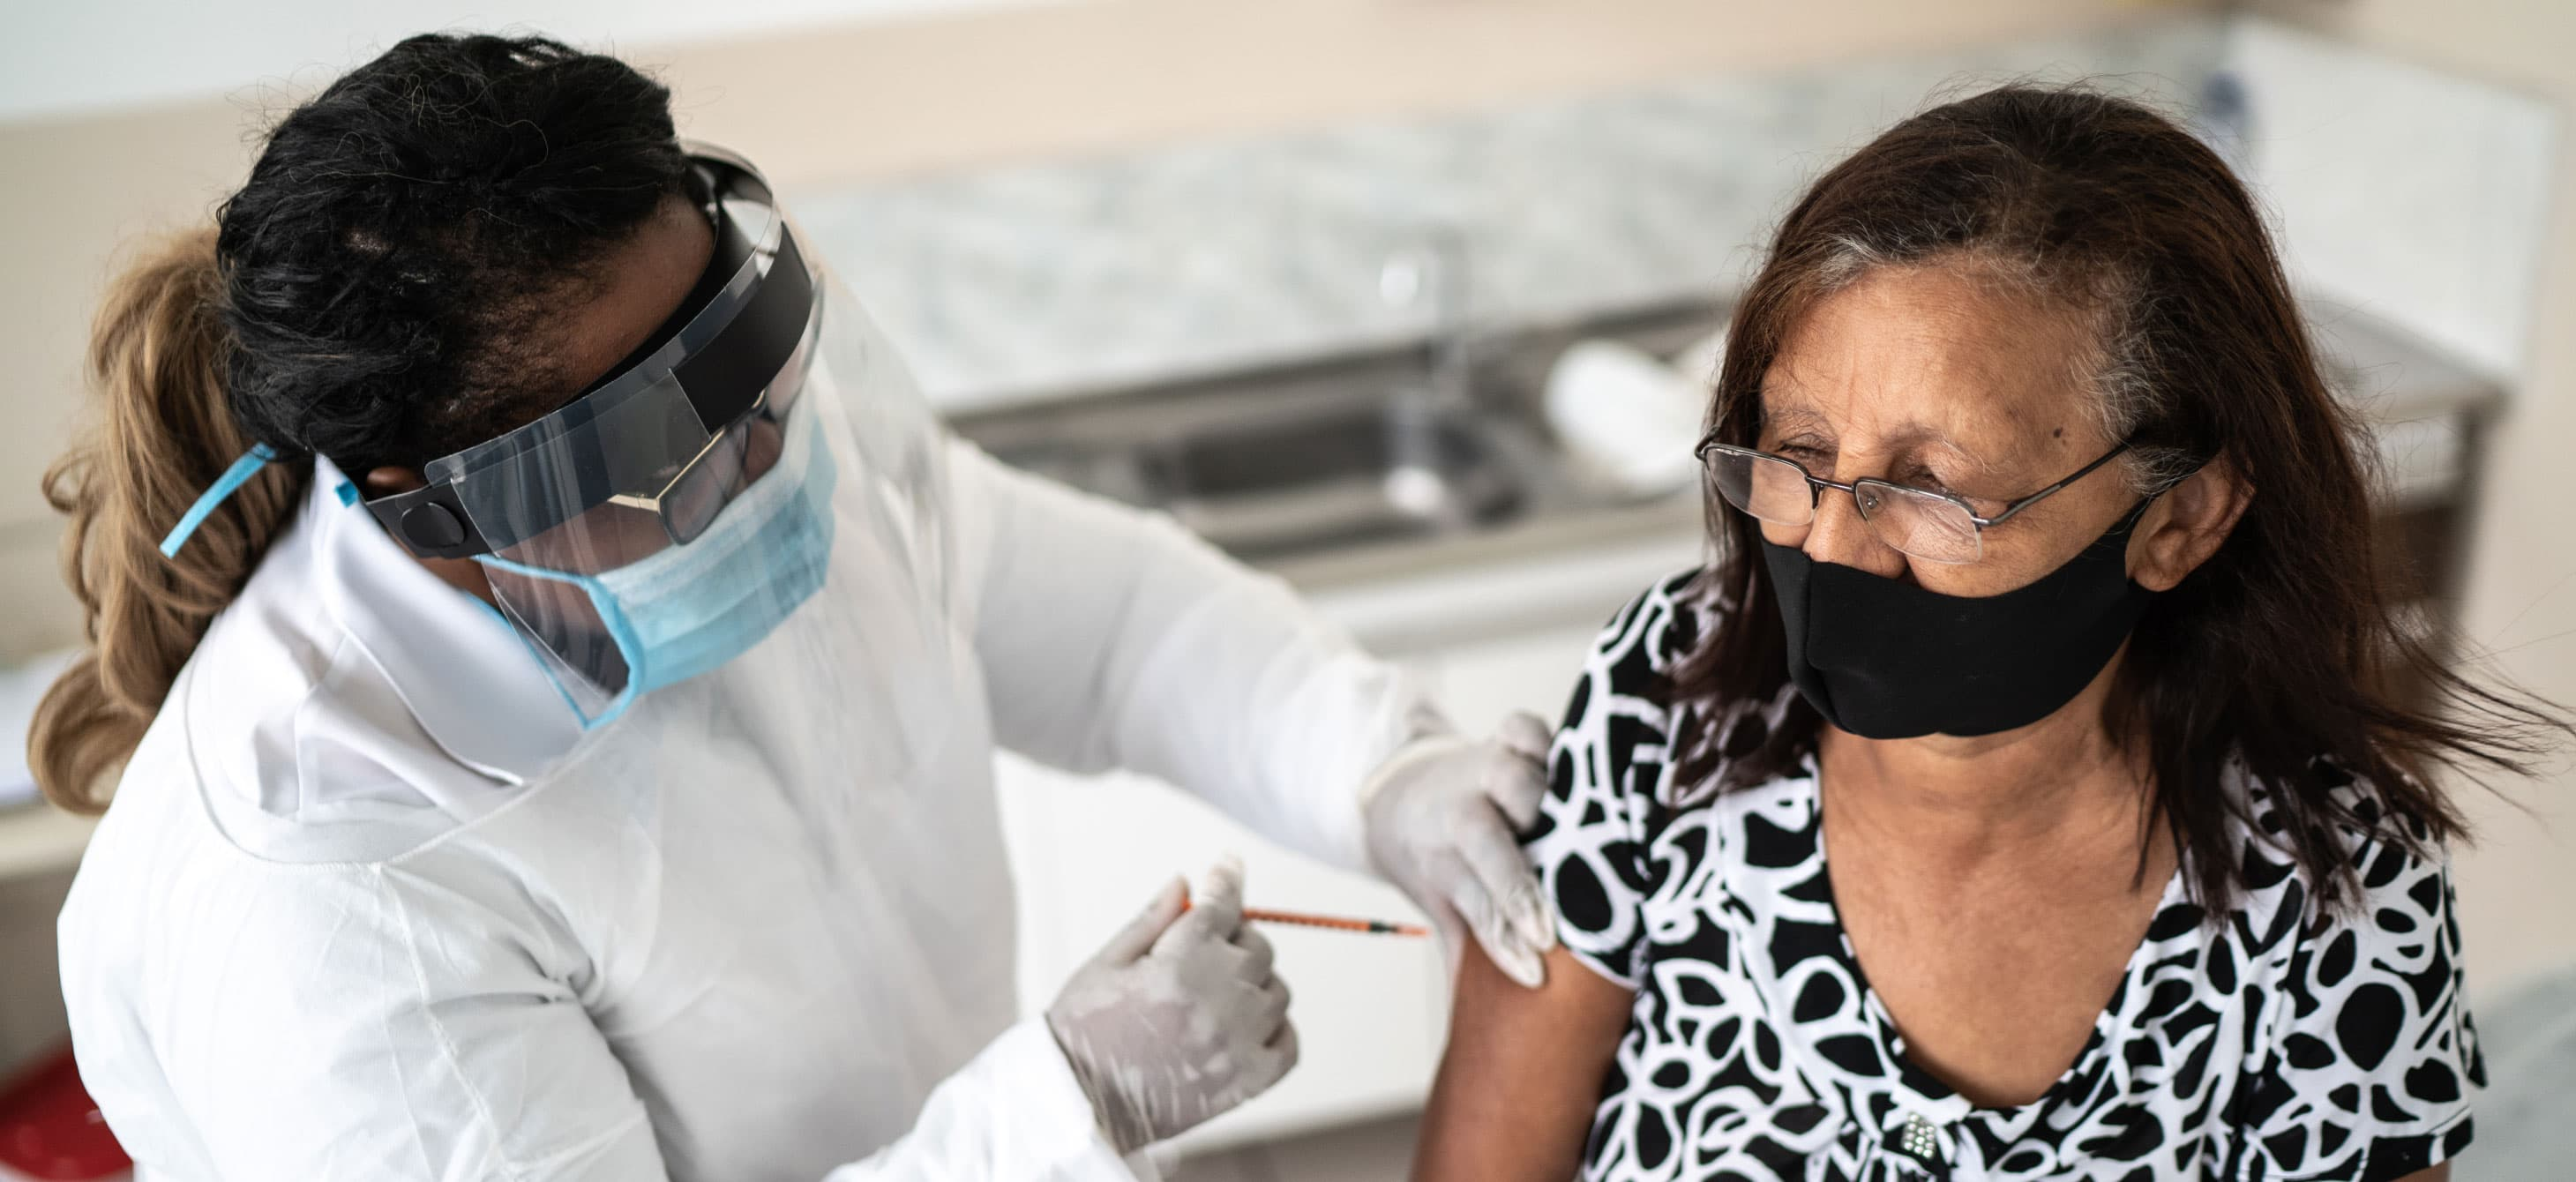 a nurse in PPE vaccinating an elderly woman wearing a mask